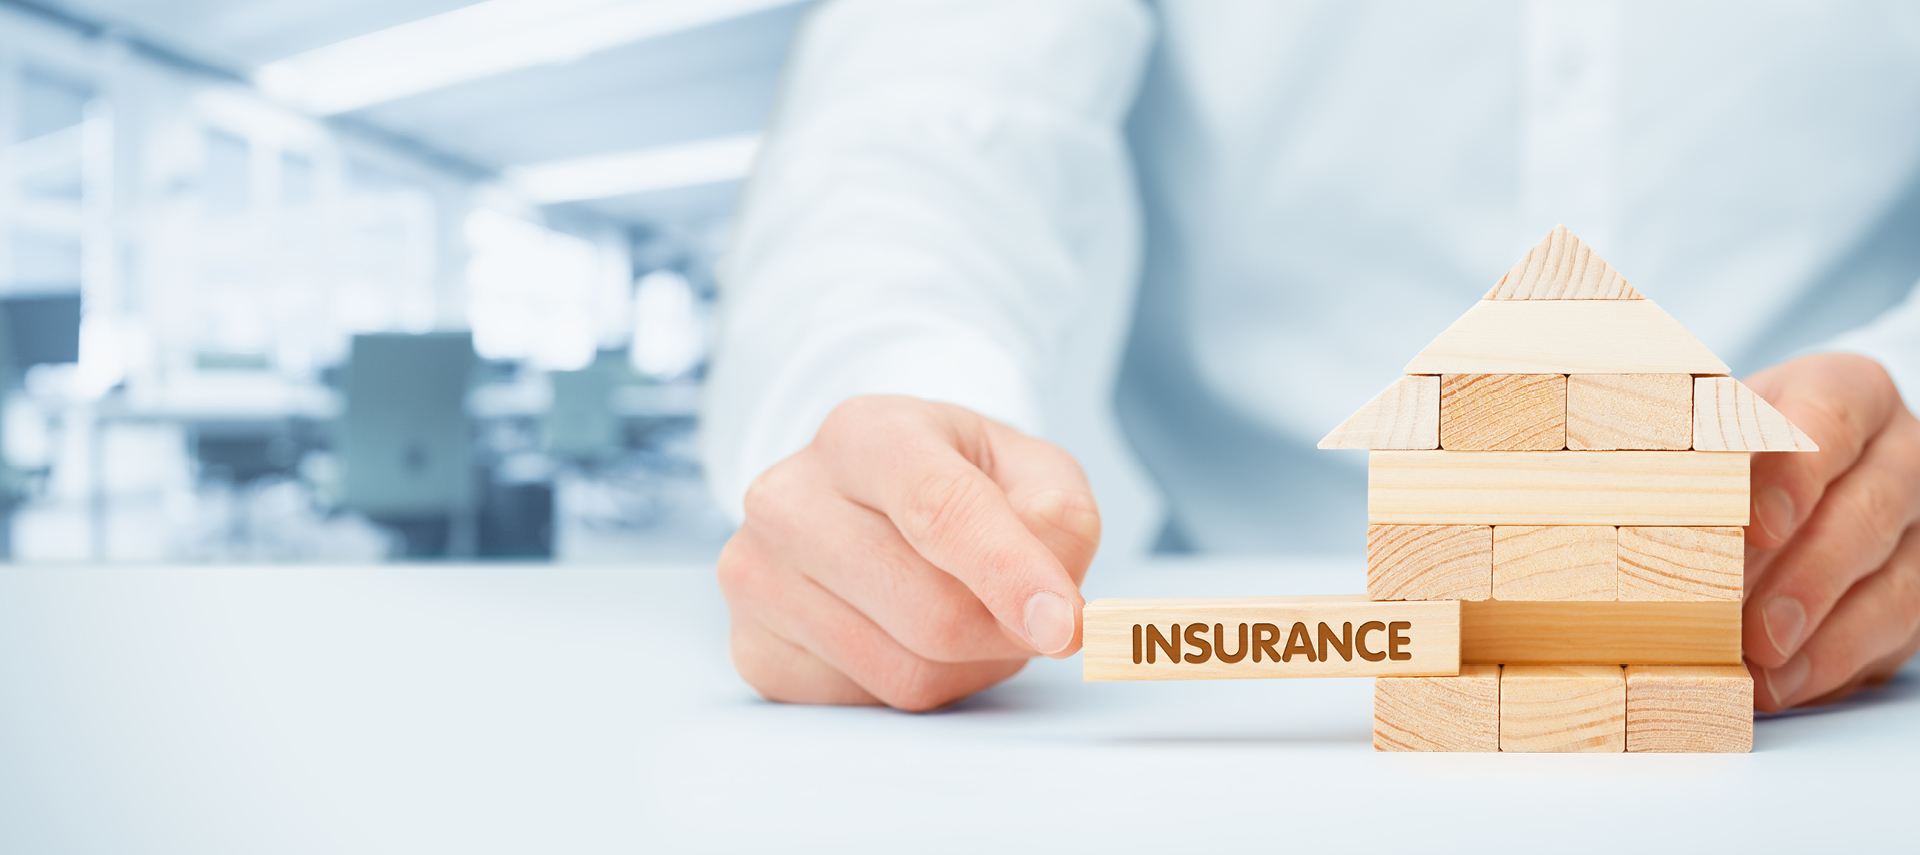 GIA Insurance Brokers - Why do I need more insurance if I already pay body corporate fees? Header Image